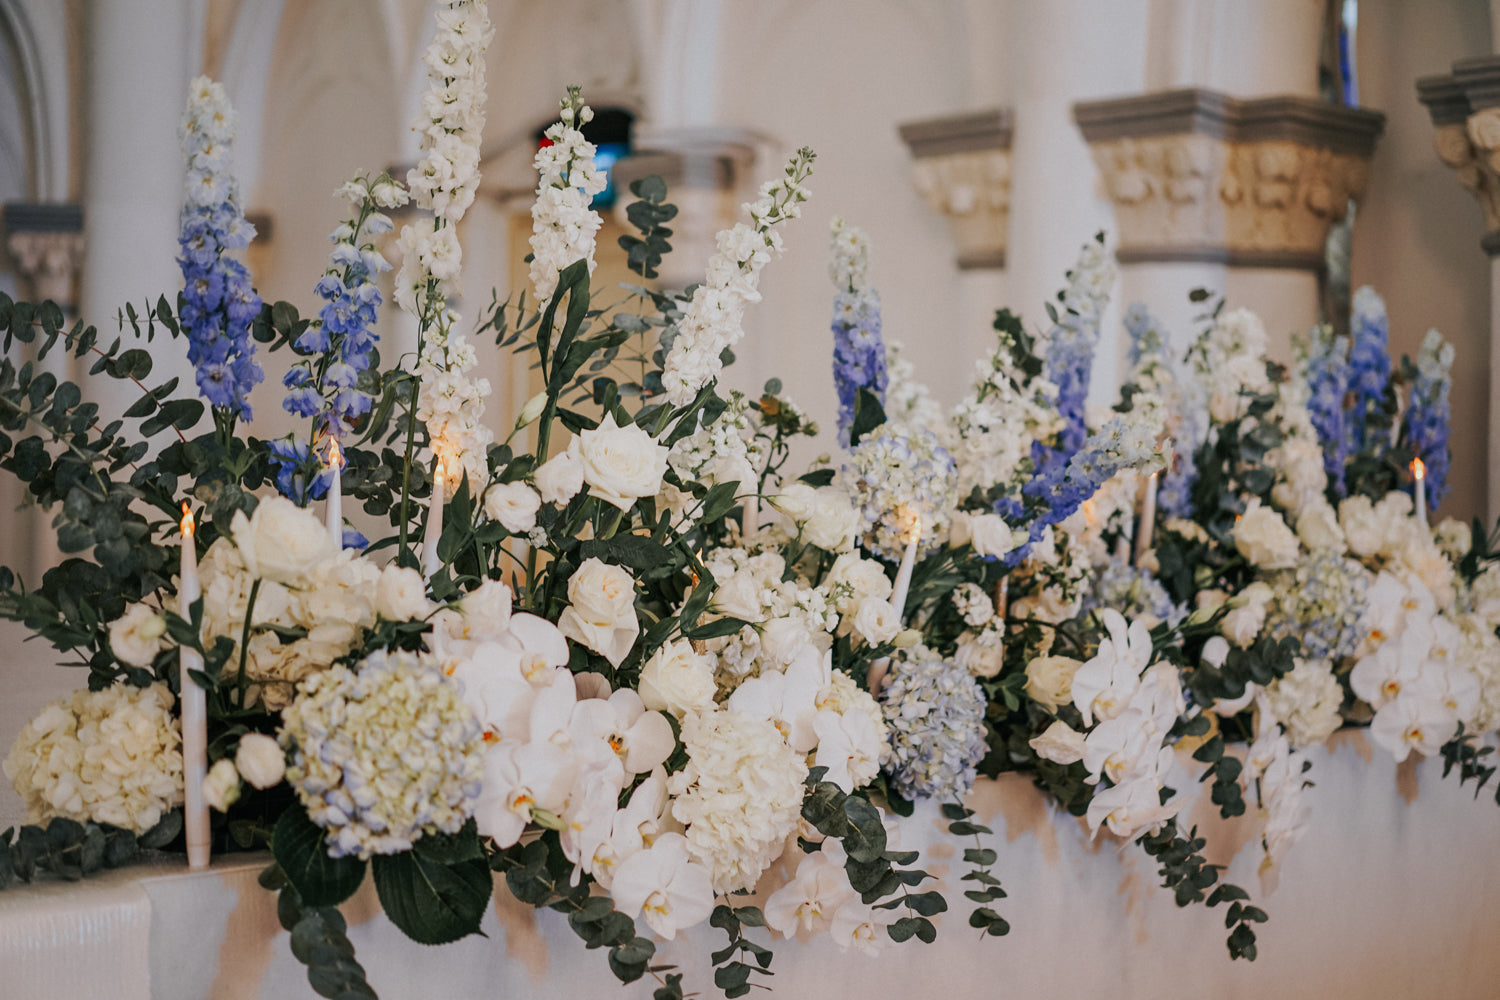 Close-up of styled white and blue flowers atop acrylic stands with candles at a romantic wedding at CHIJMES